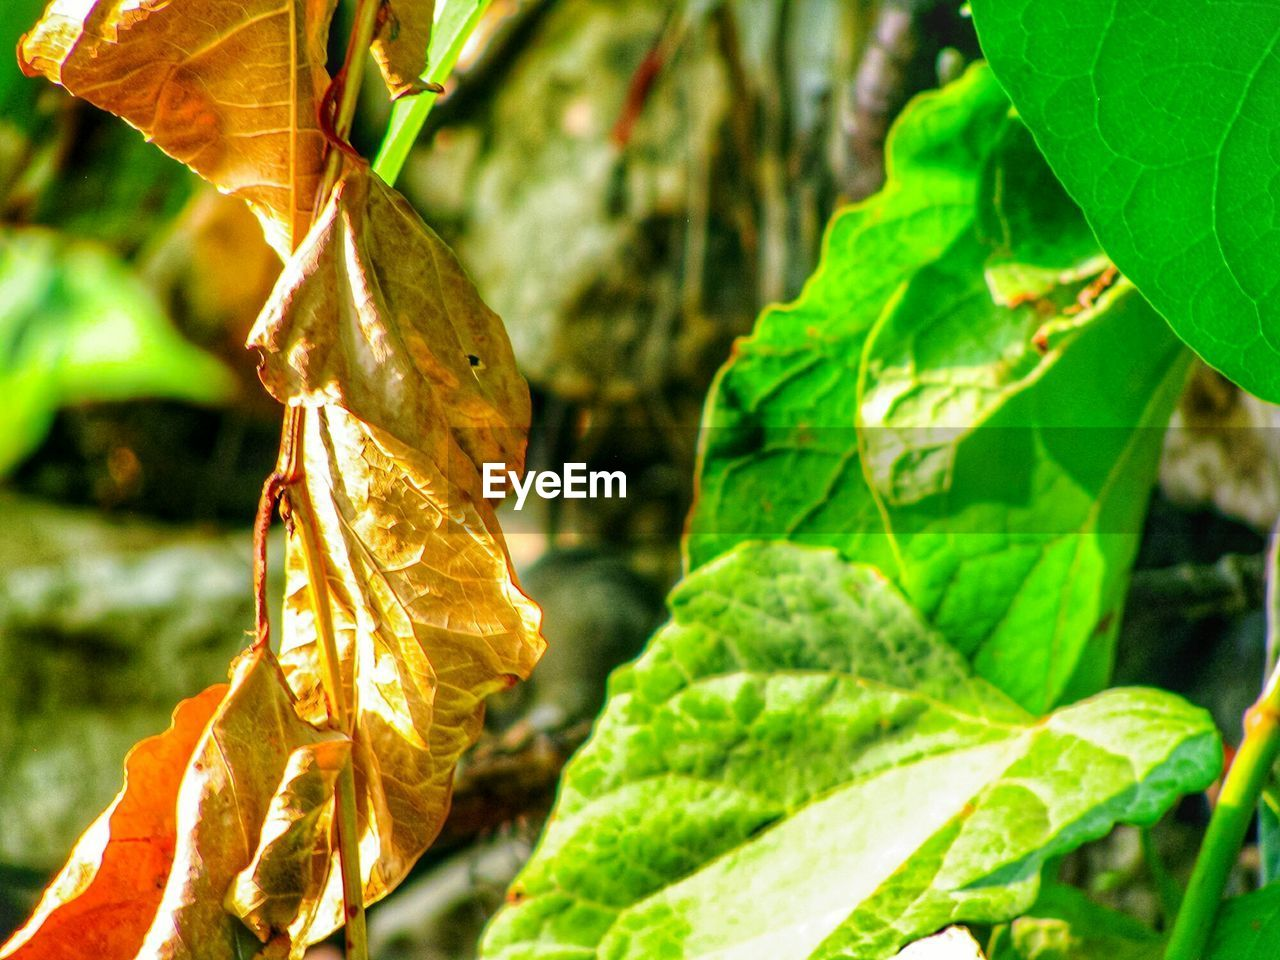 leaf, plant part, plant, close-up, focus on foreground, growth, nature, day, no people, leaves, green color, beauty in nature, outdoors, leaf vein, dry, sunlight, selective focus, hanging, vulnerability, fragility, change